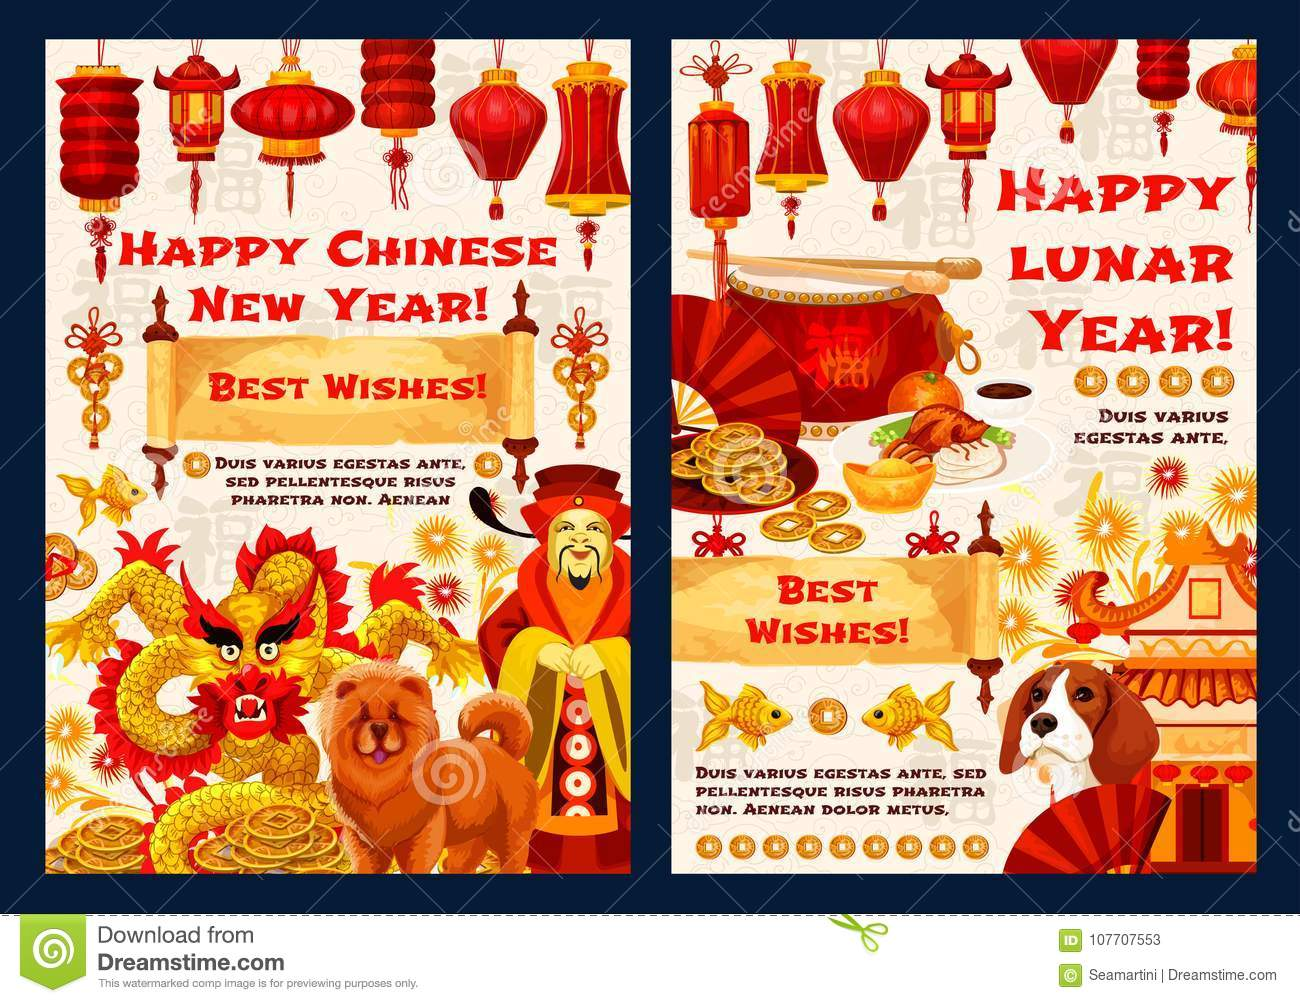 Happy chinese new year vector traditional cards stock vector download happy chinese new year vector traditional cards stock vector illustration of celebration design m4hsunfo